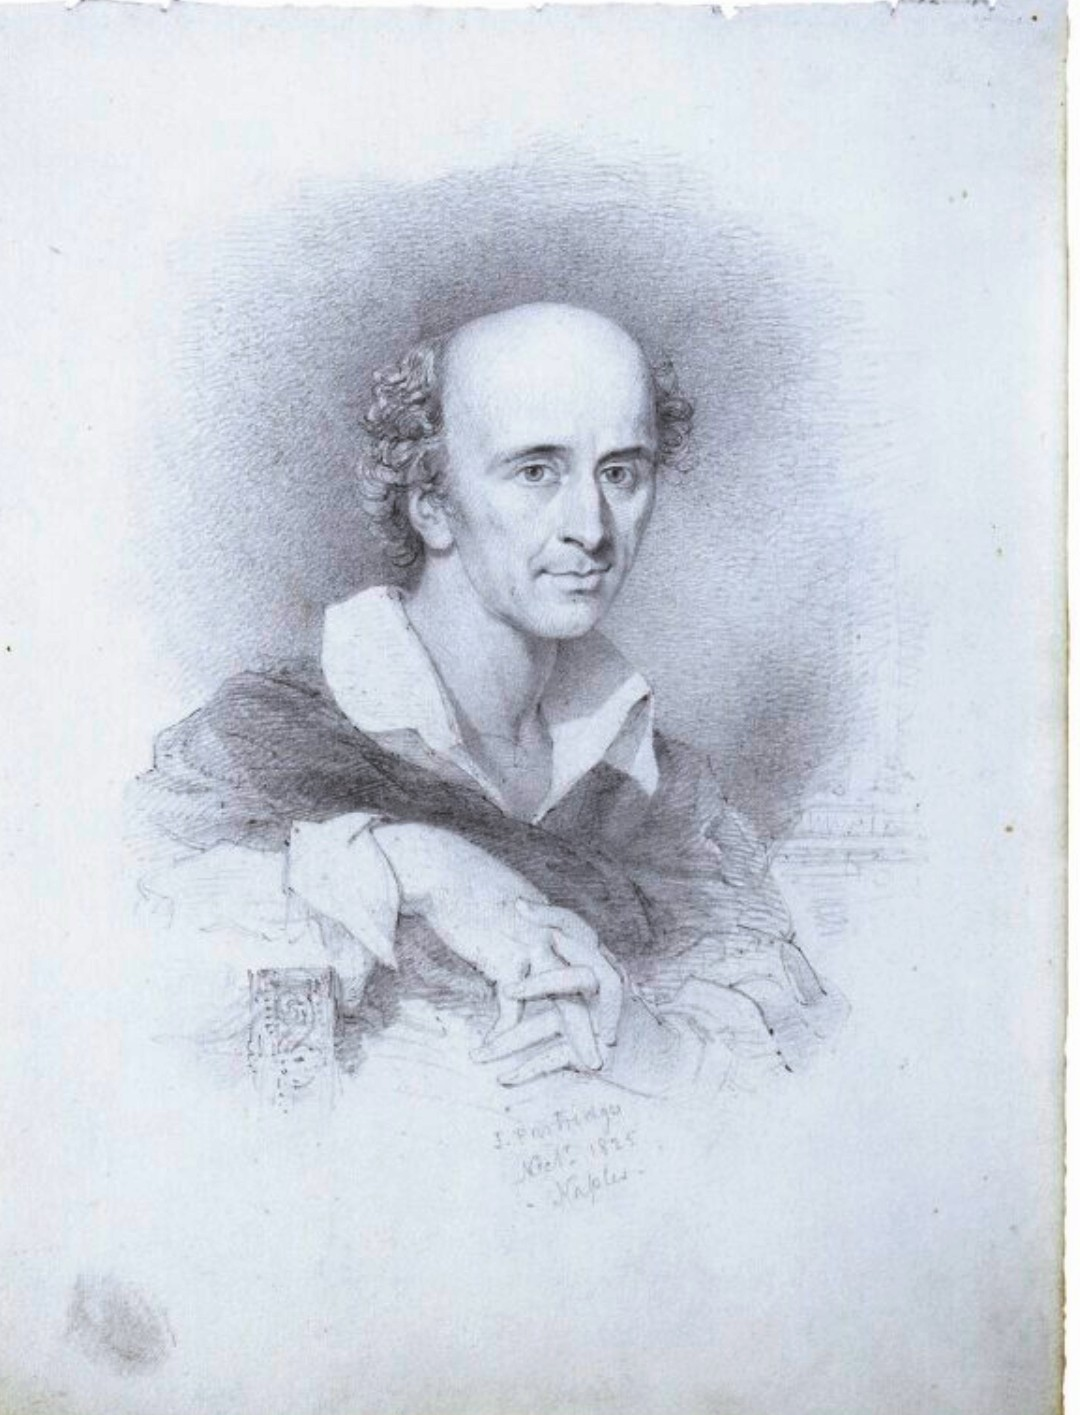 Thomas Uwins, disegno a matita di John Partridge, Napoli 1825, 238mm x 184mm, National Portrait Gallery, London